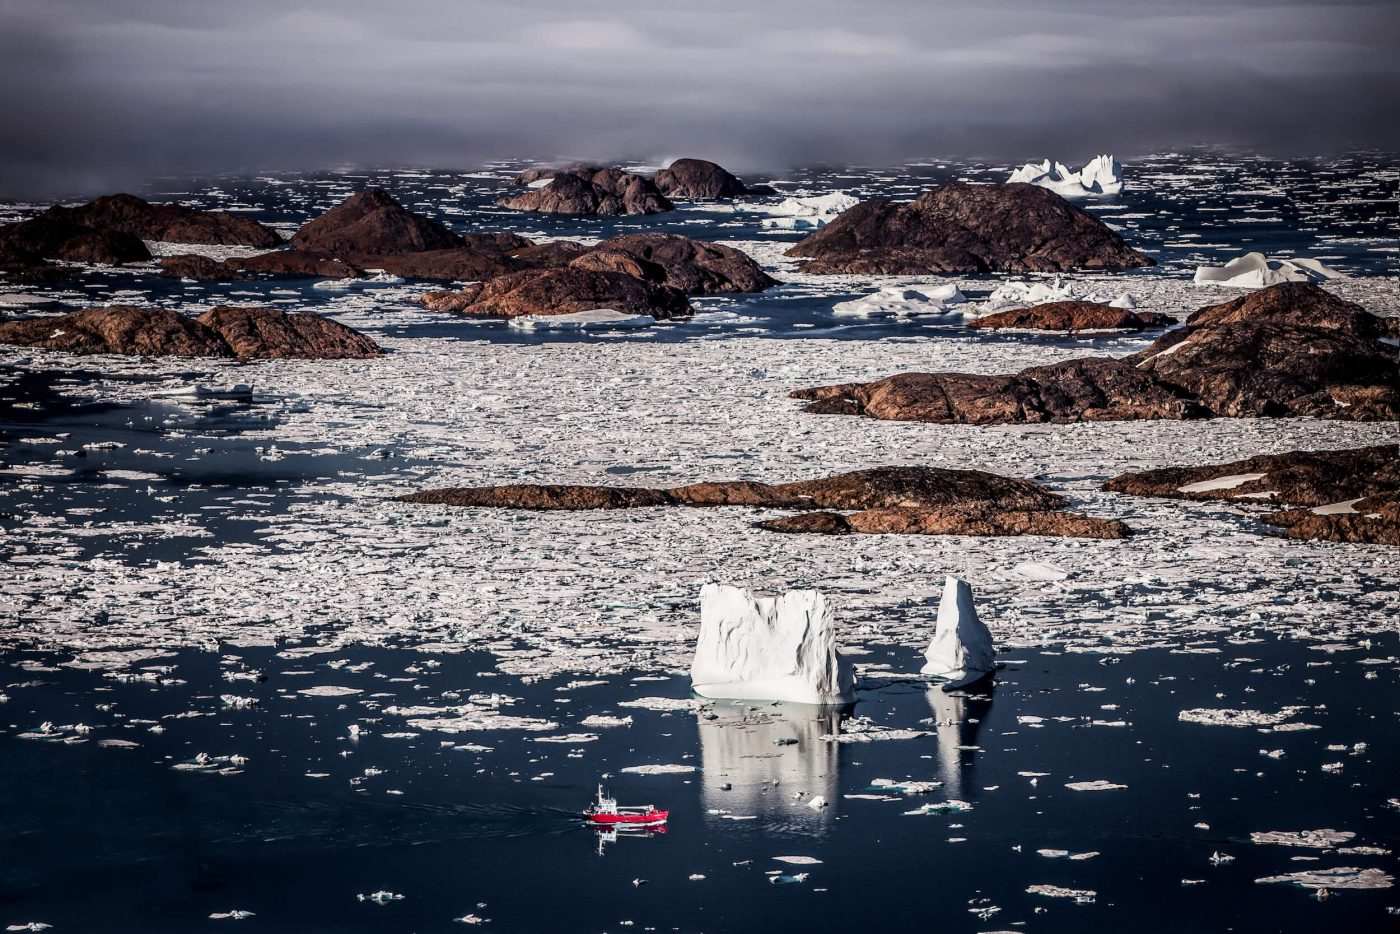 A Royal Arctic Line supply ship in the archipelago near Kulusuk in East Greenland. Photo by Mads Pihl